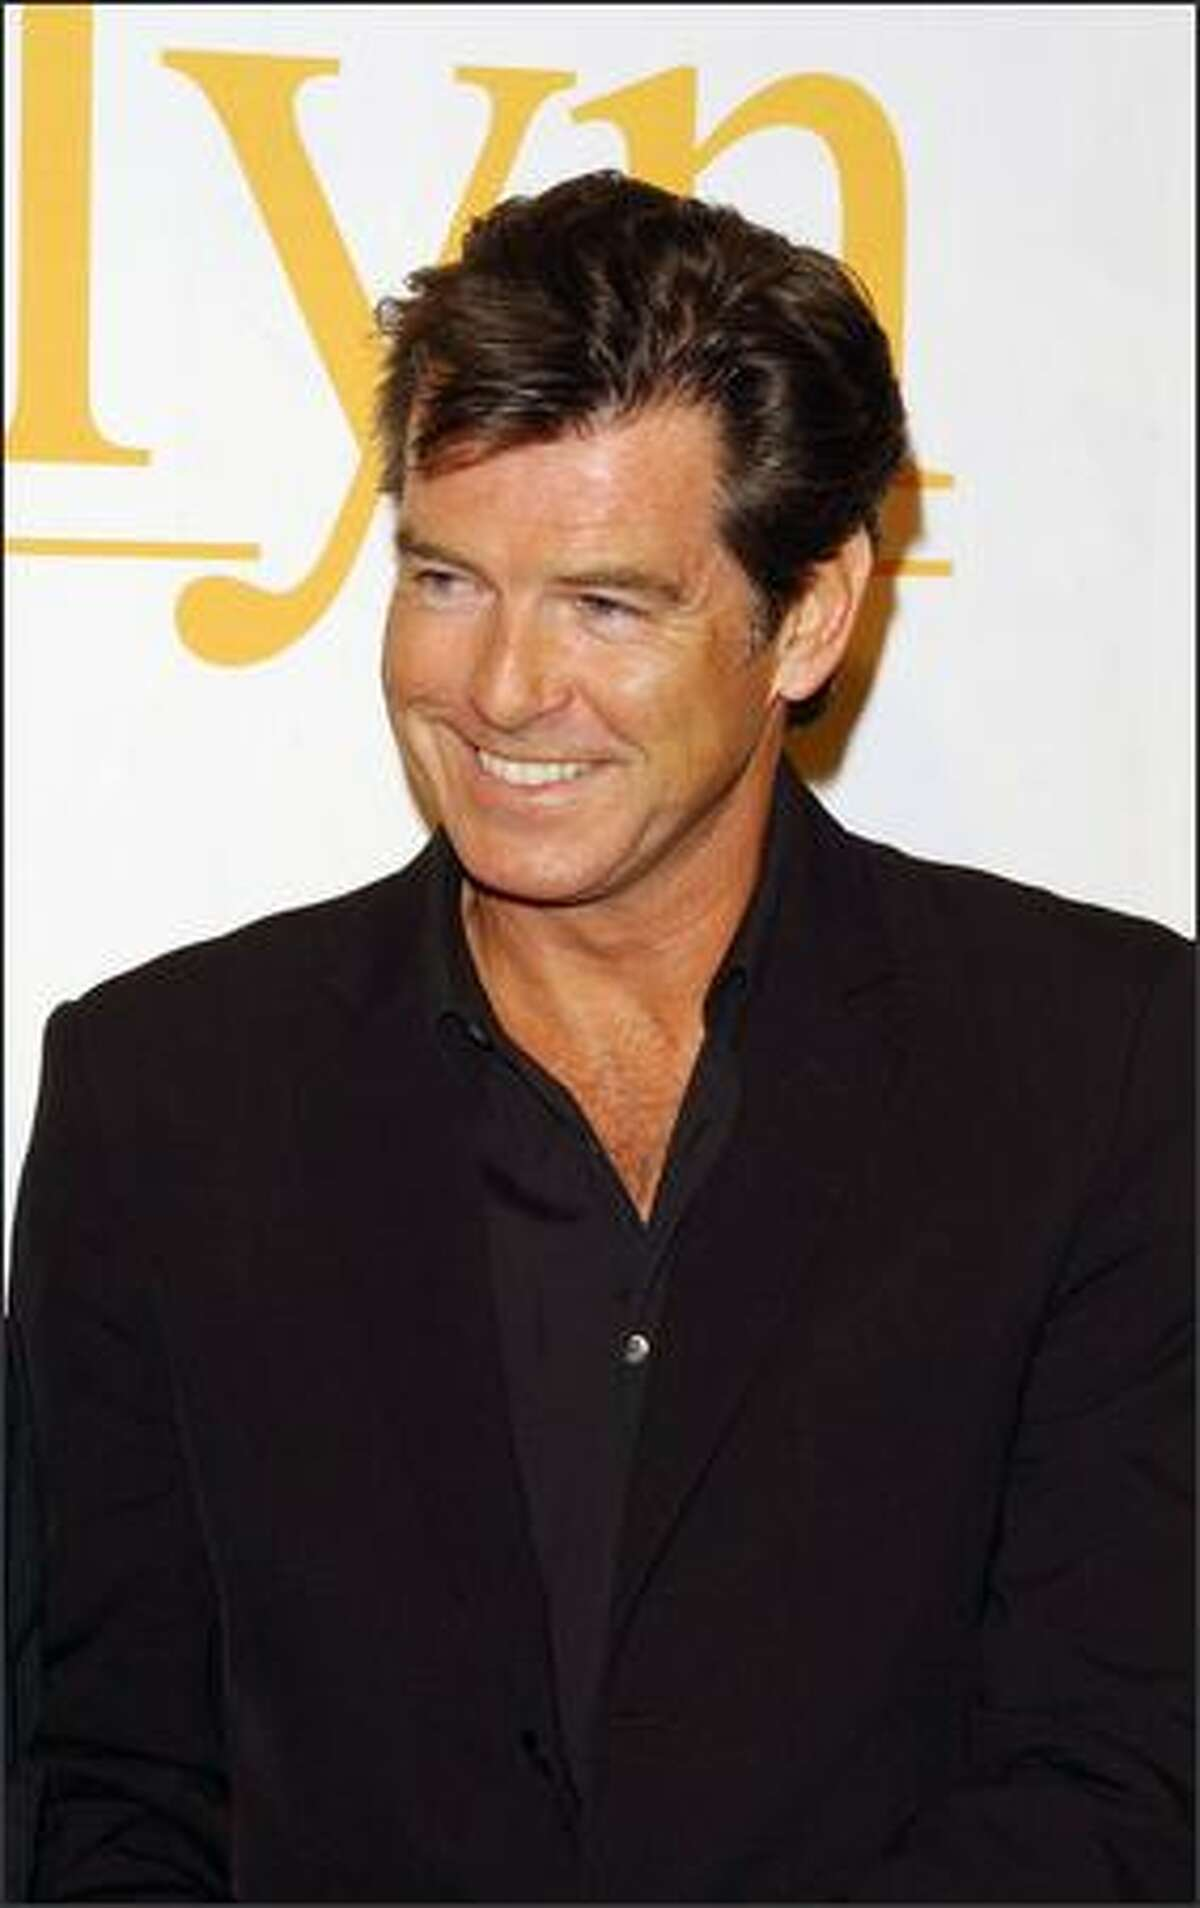 Actor Pierce Brosnan attends the Spanish premiere of the new movie